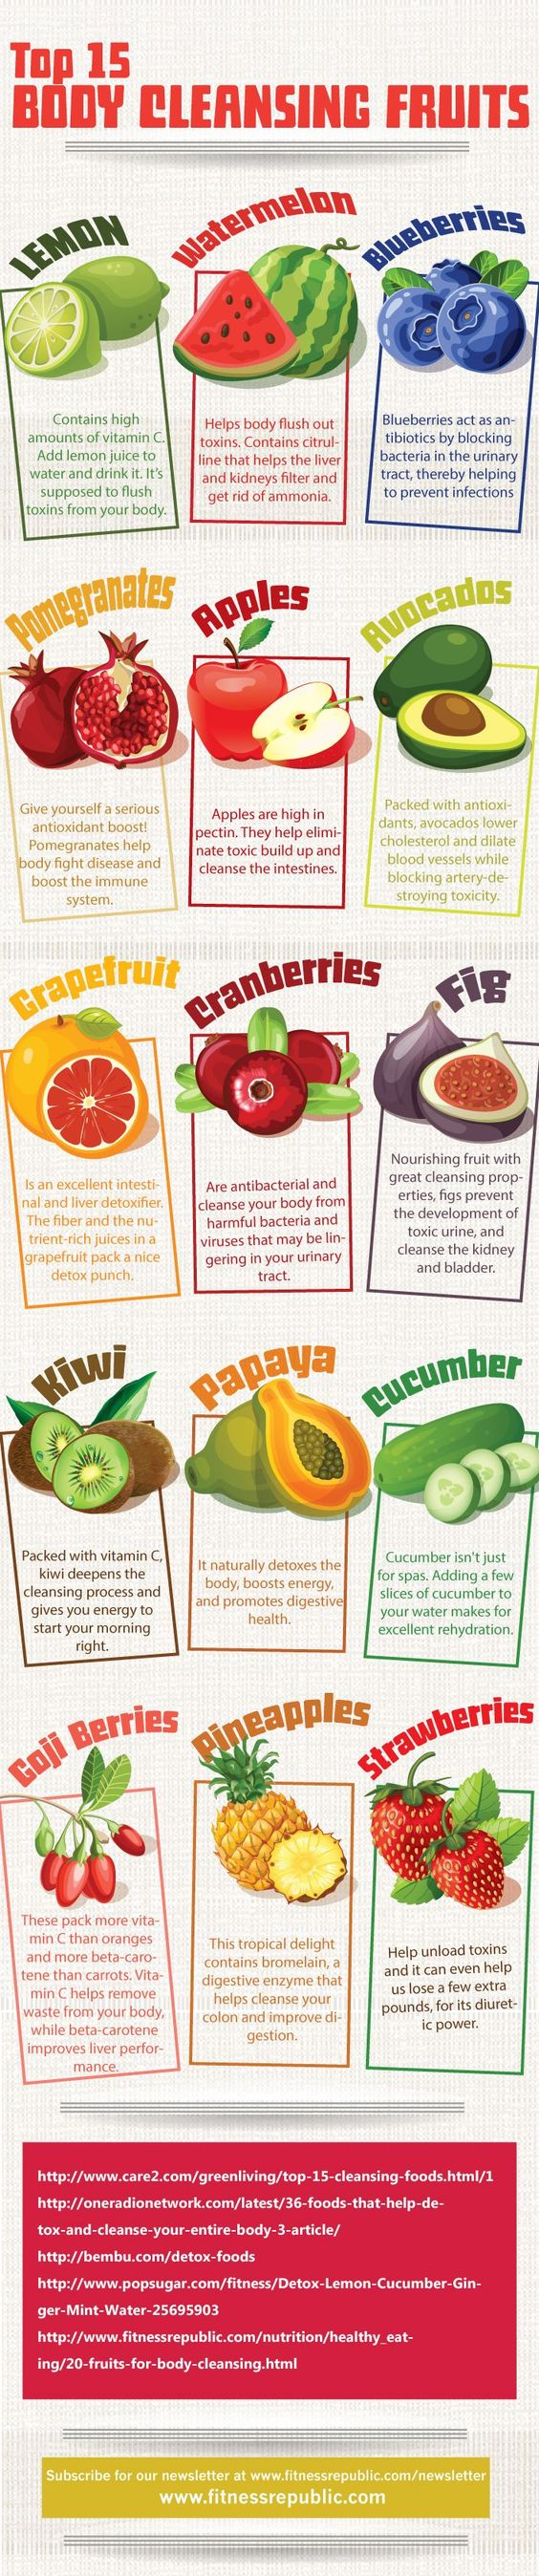 15 Body Cleansing Fruits Fruit fasts are said to allow your digestive system to detoxify and get rid of toxins 15 Body Cleansing Fruits , Fruit fasts  are said to allow your digestive system to detoxify and get rid of toxins